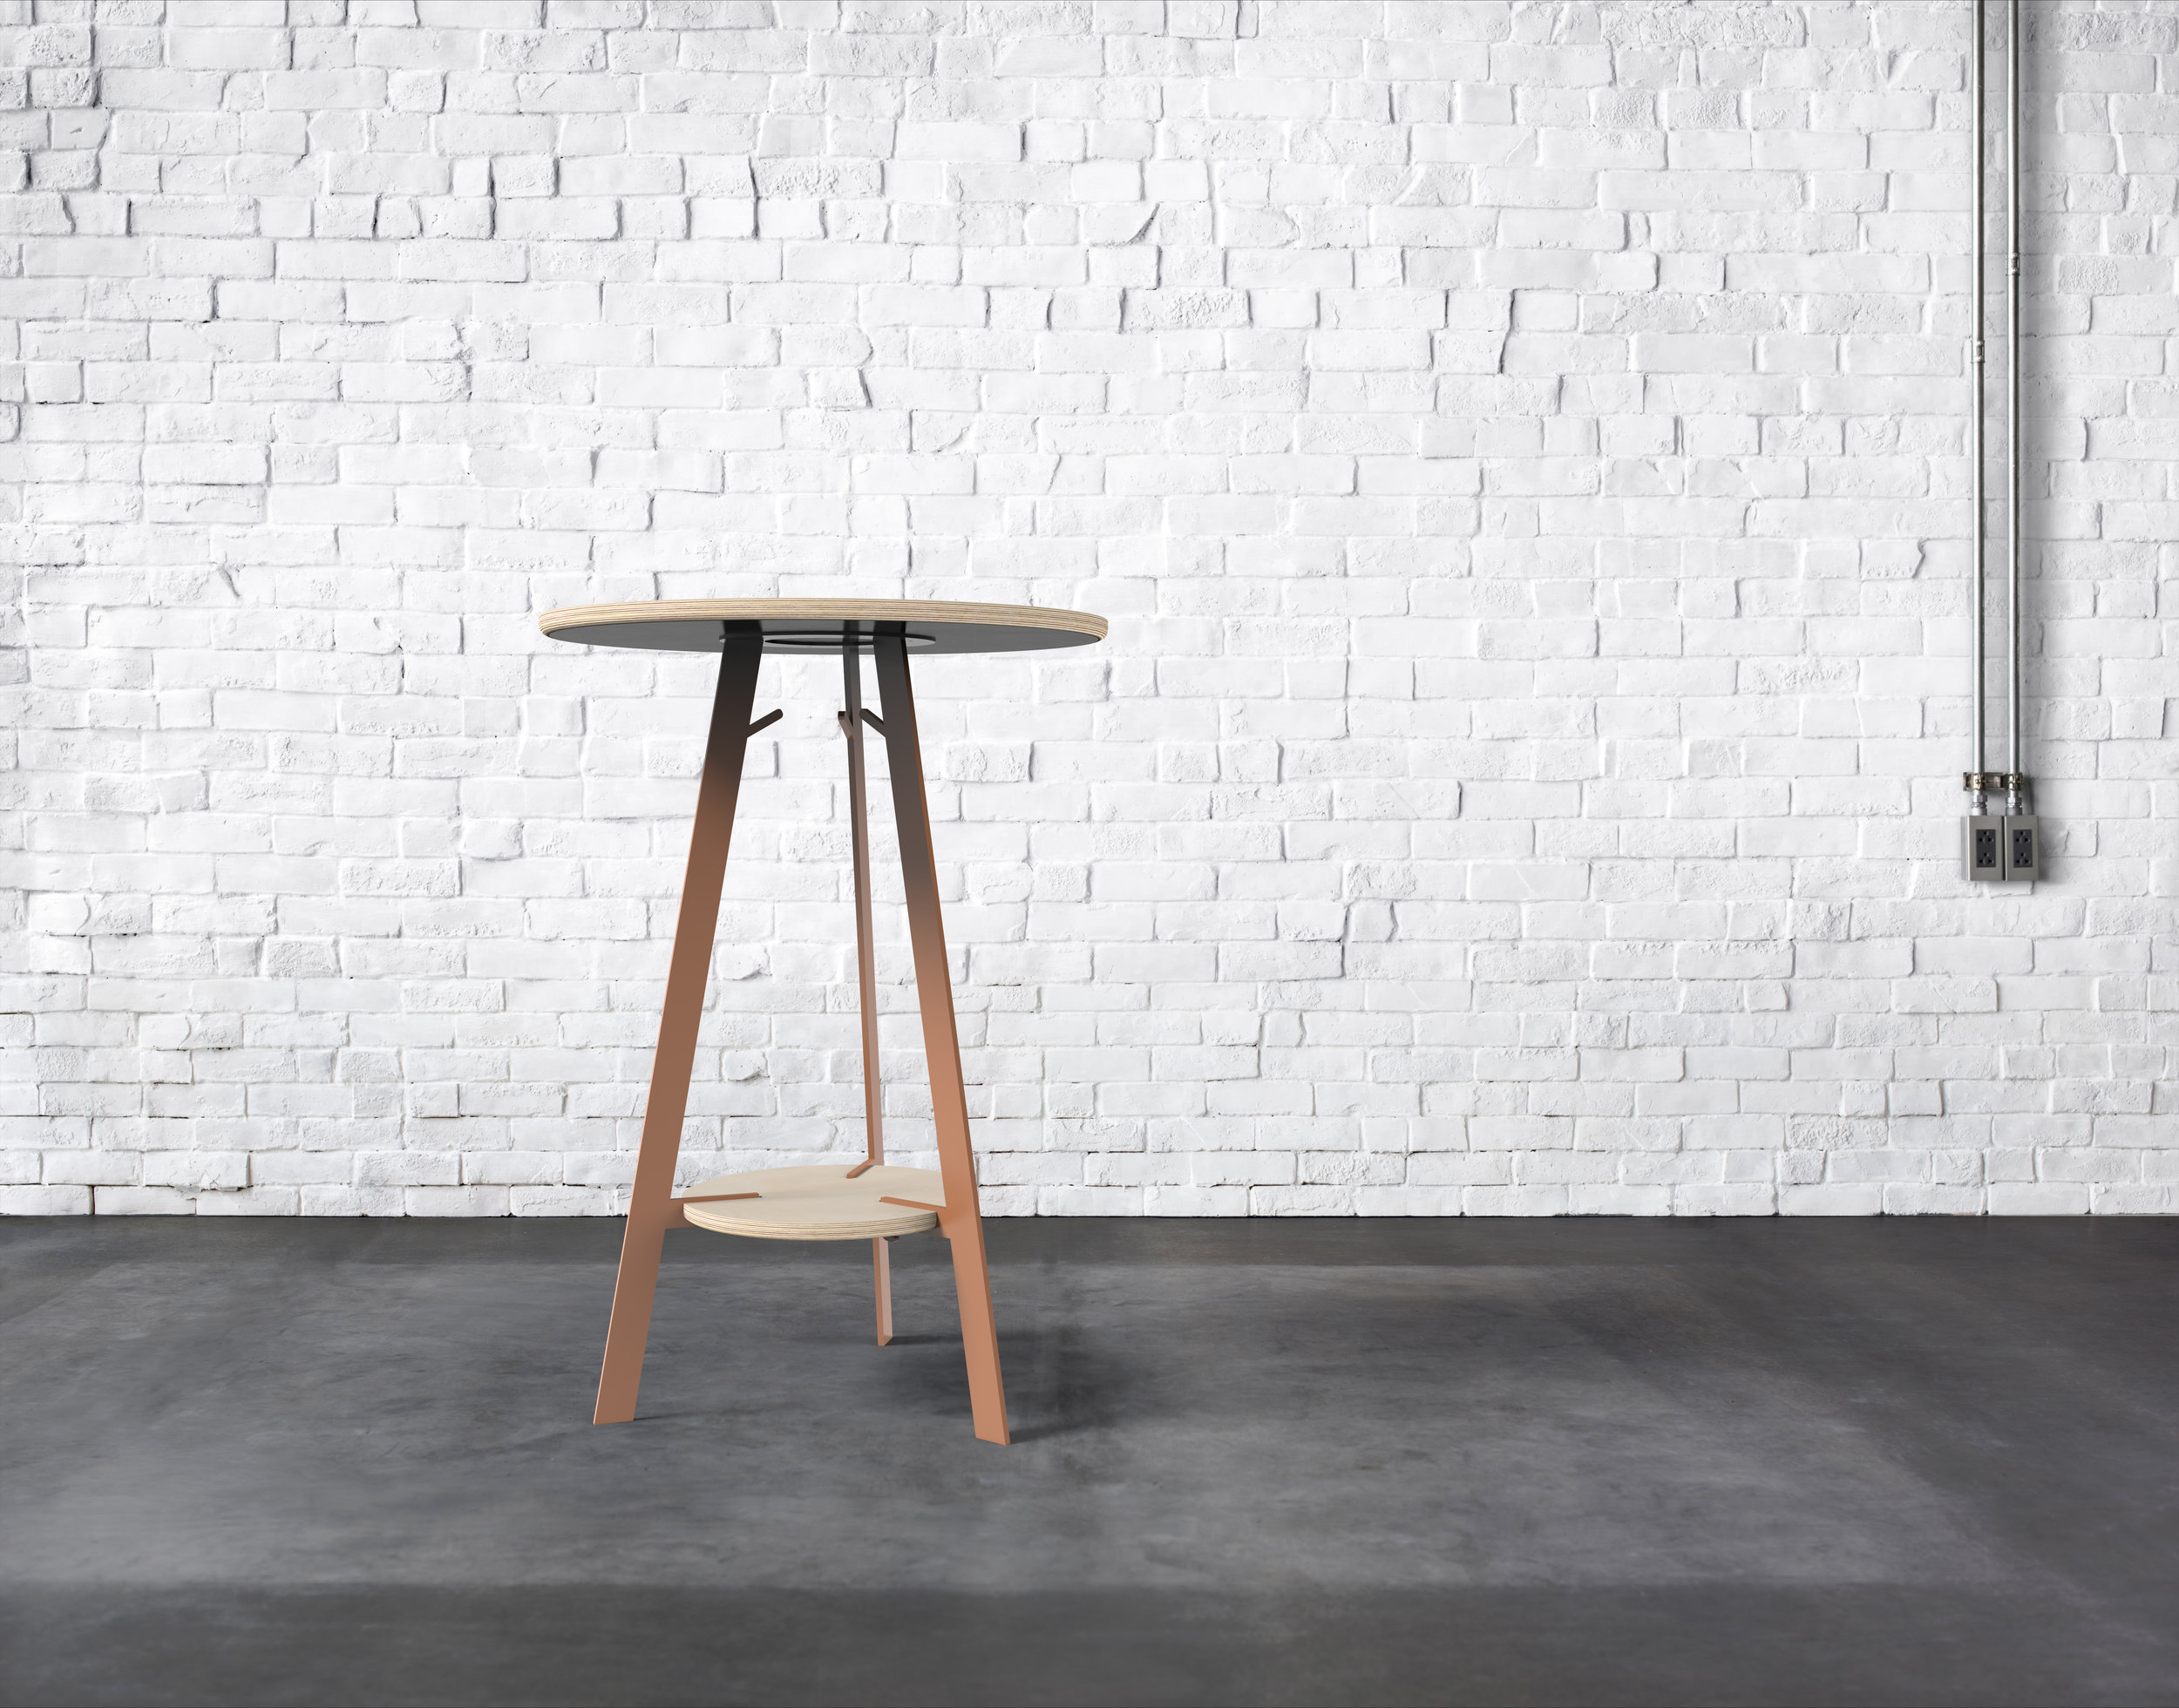 Barlow Bar Height Table in Premium Ply with Terra Cotta base